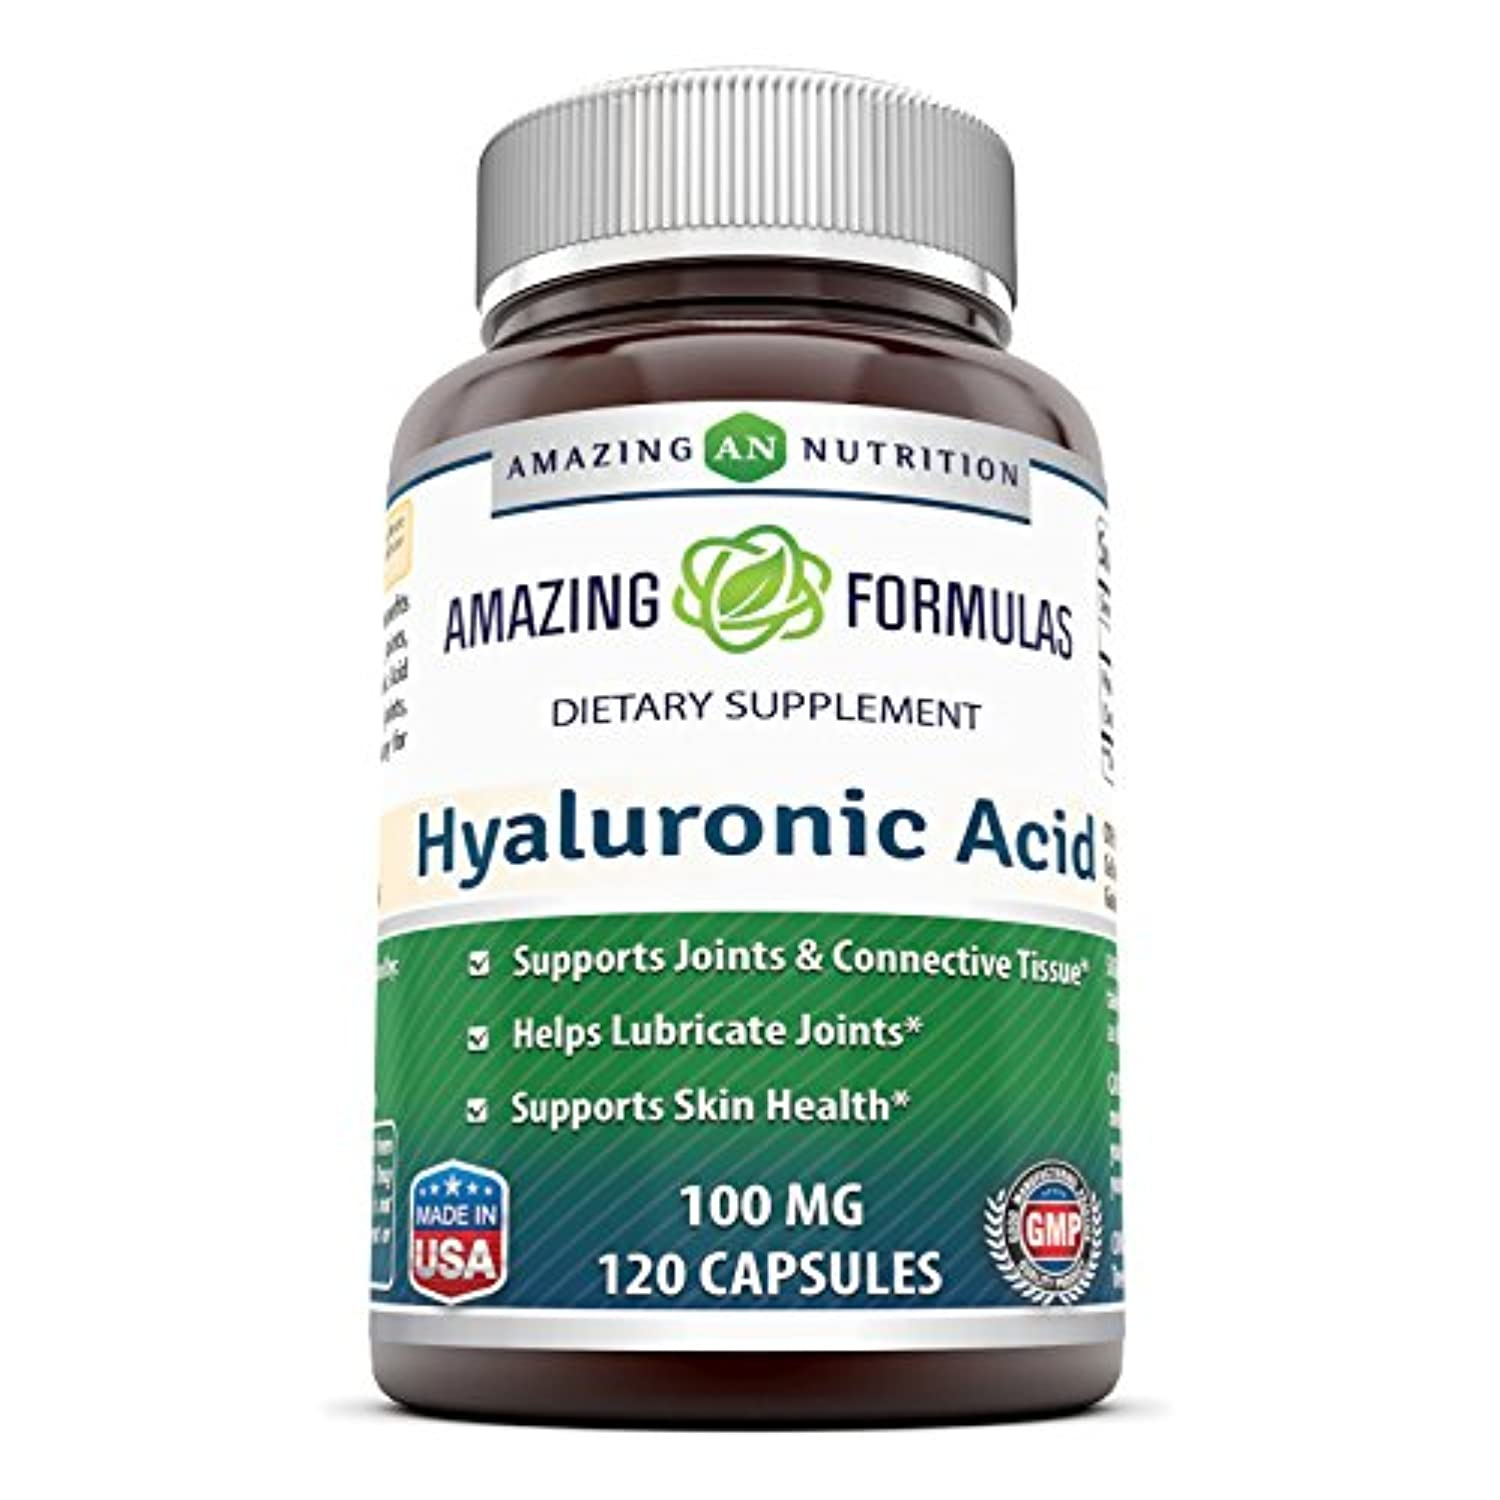 Classier: Buy Amazing Nutrition Amazing Formulas Hyaluronic Acid 100 mg 120 Capsules (Non-GMO,Gluten Free) - Support Healthy Connective Tissue and Joints - Promote Youthful Healthy Skin